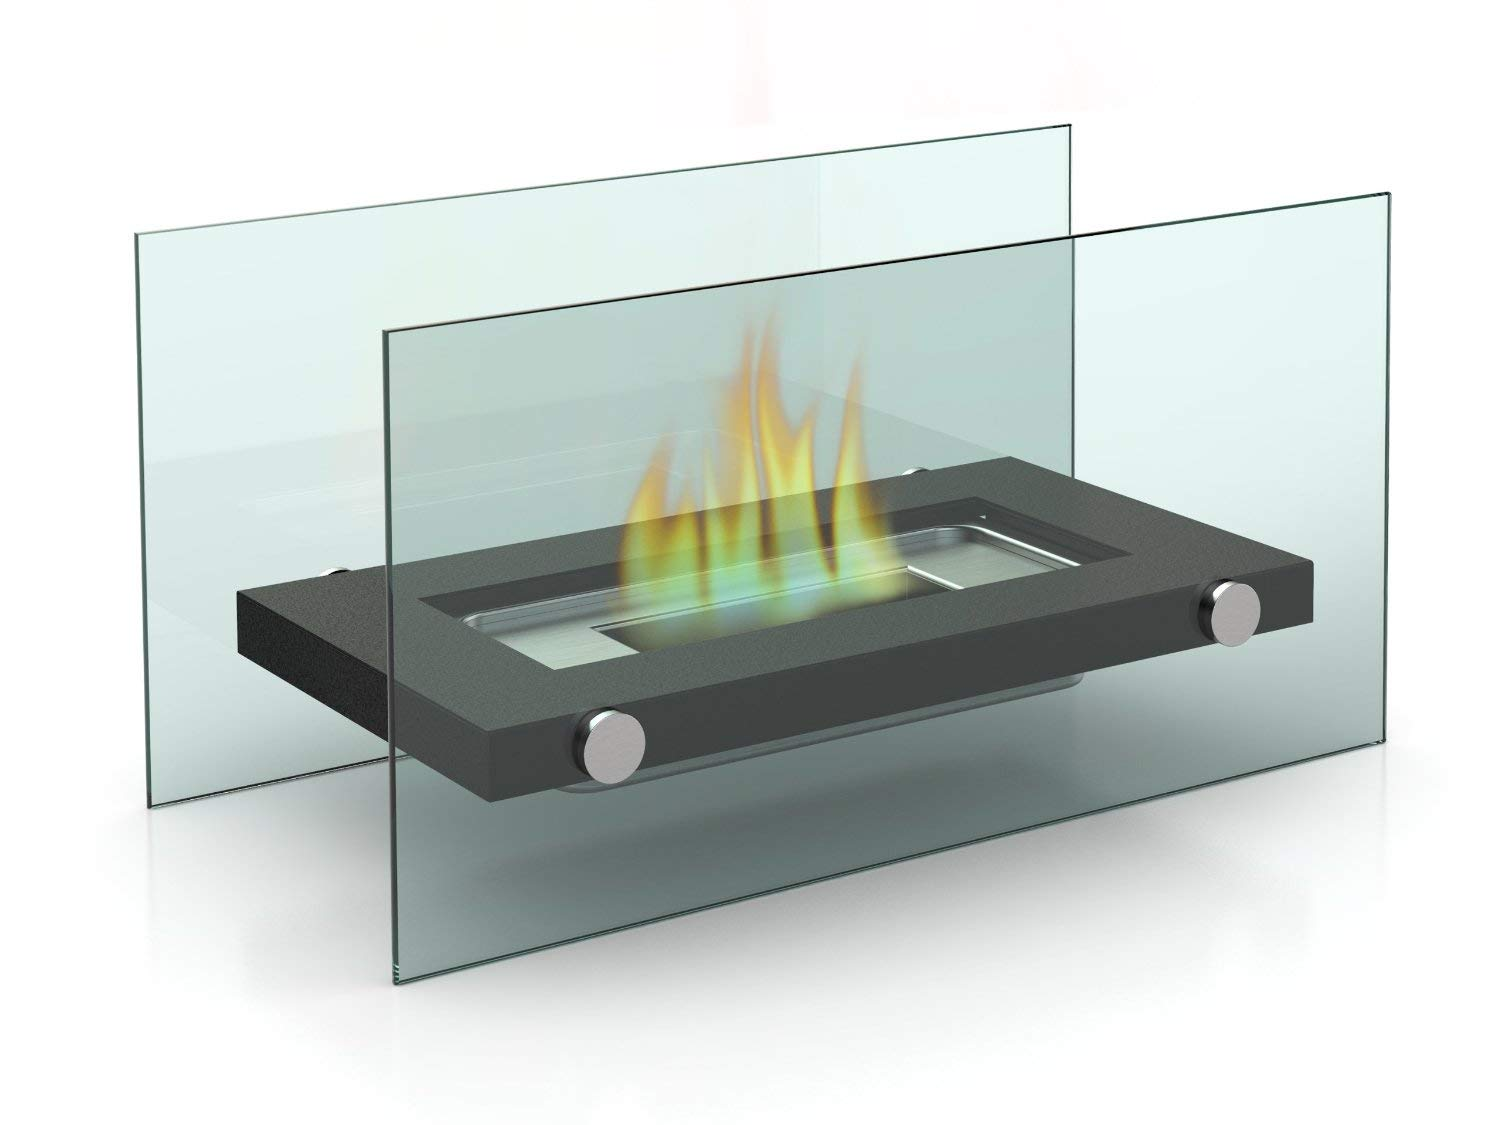 keinode Bio Ethanol Fireplace Burner Heater Fuel Ventless Table Top Portable Eco Glass Cube Ventless Indoor Outdoor Fire Pit Tabletop Portable Fire Bowl Pot by keinode